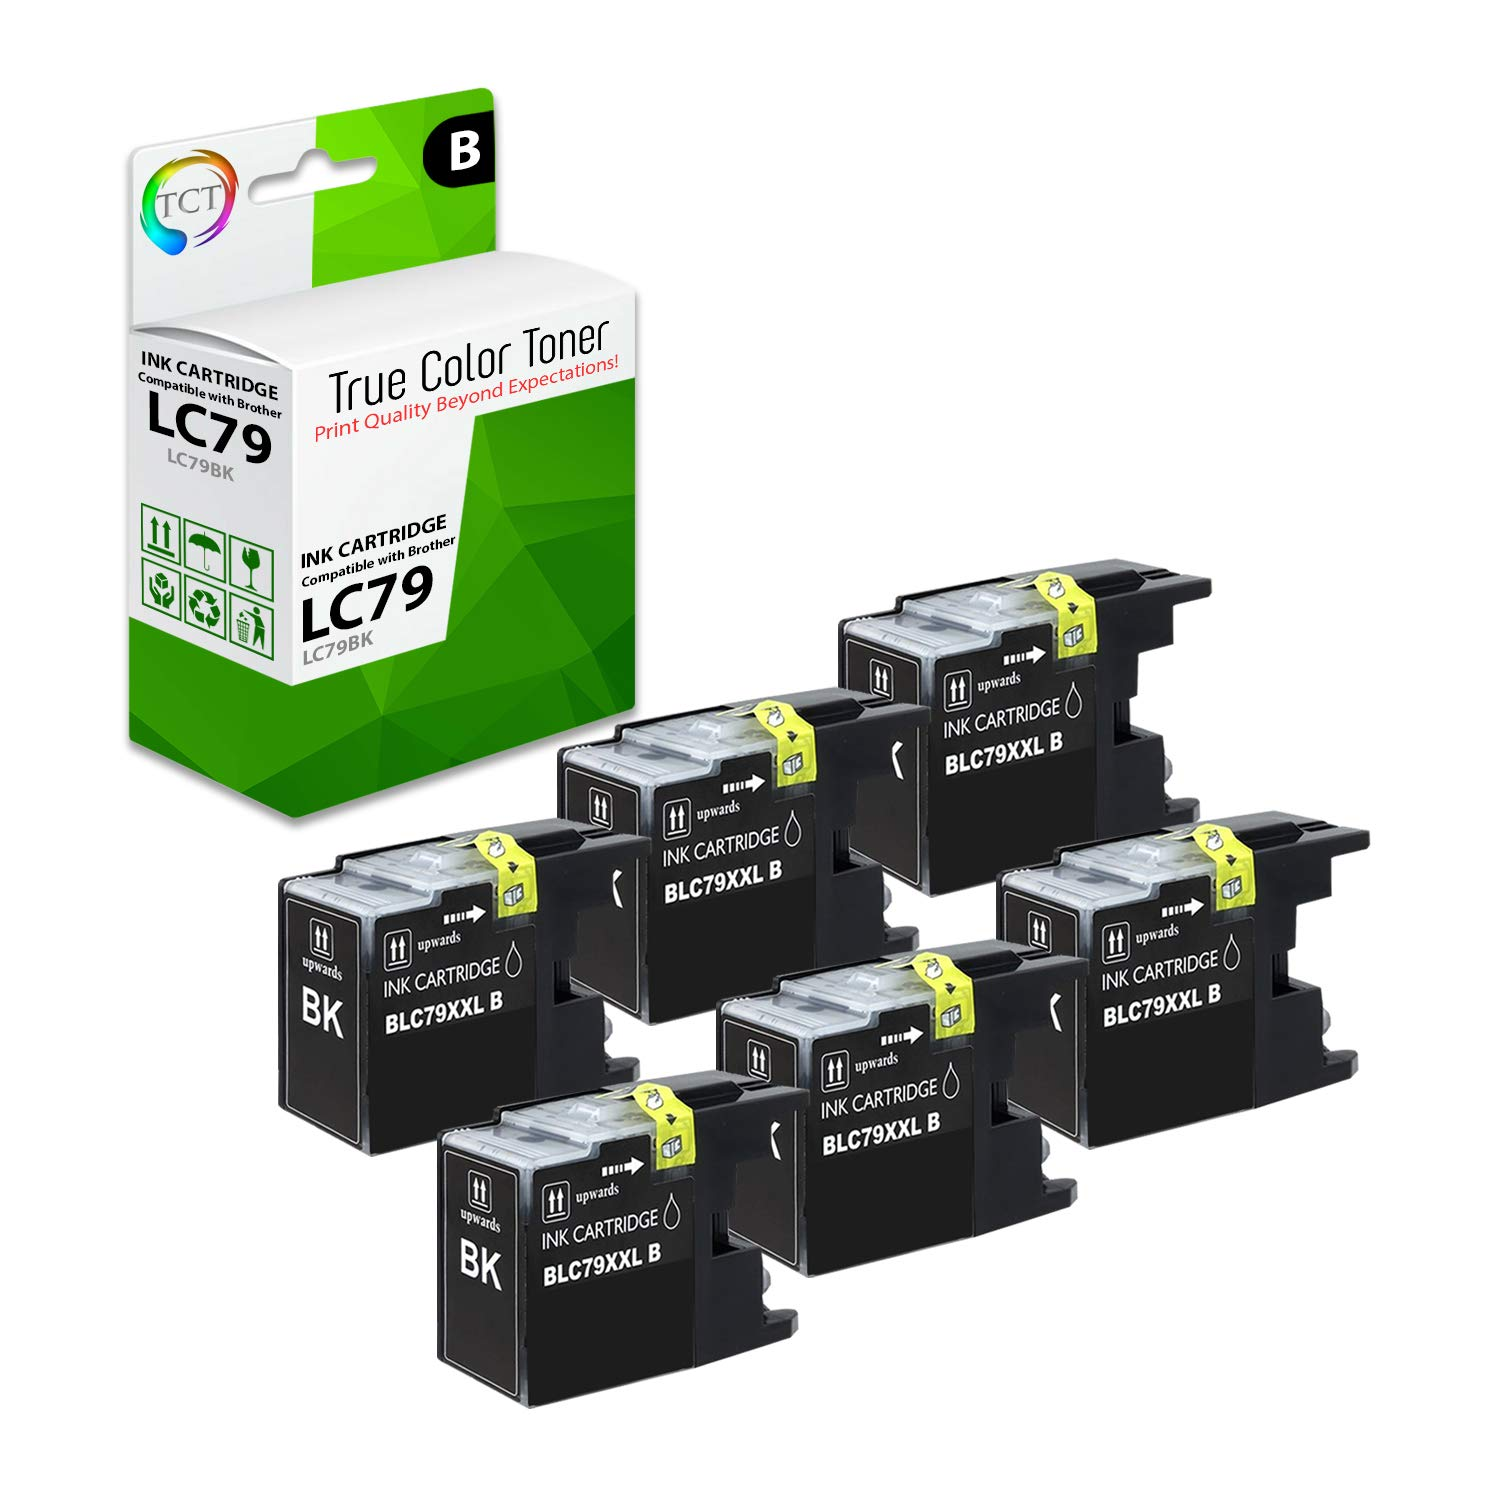 TCT Compatible Ink Cartridge Replacement for Brother LC79 LC79BK Black Super High Yield Works with Brother MFC-5910DW J6510DW J6710DW J6910DW Printers (2,400 Pages) - 6 Pack